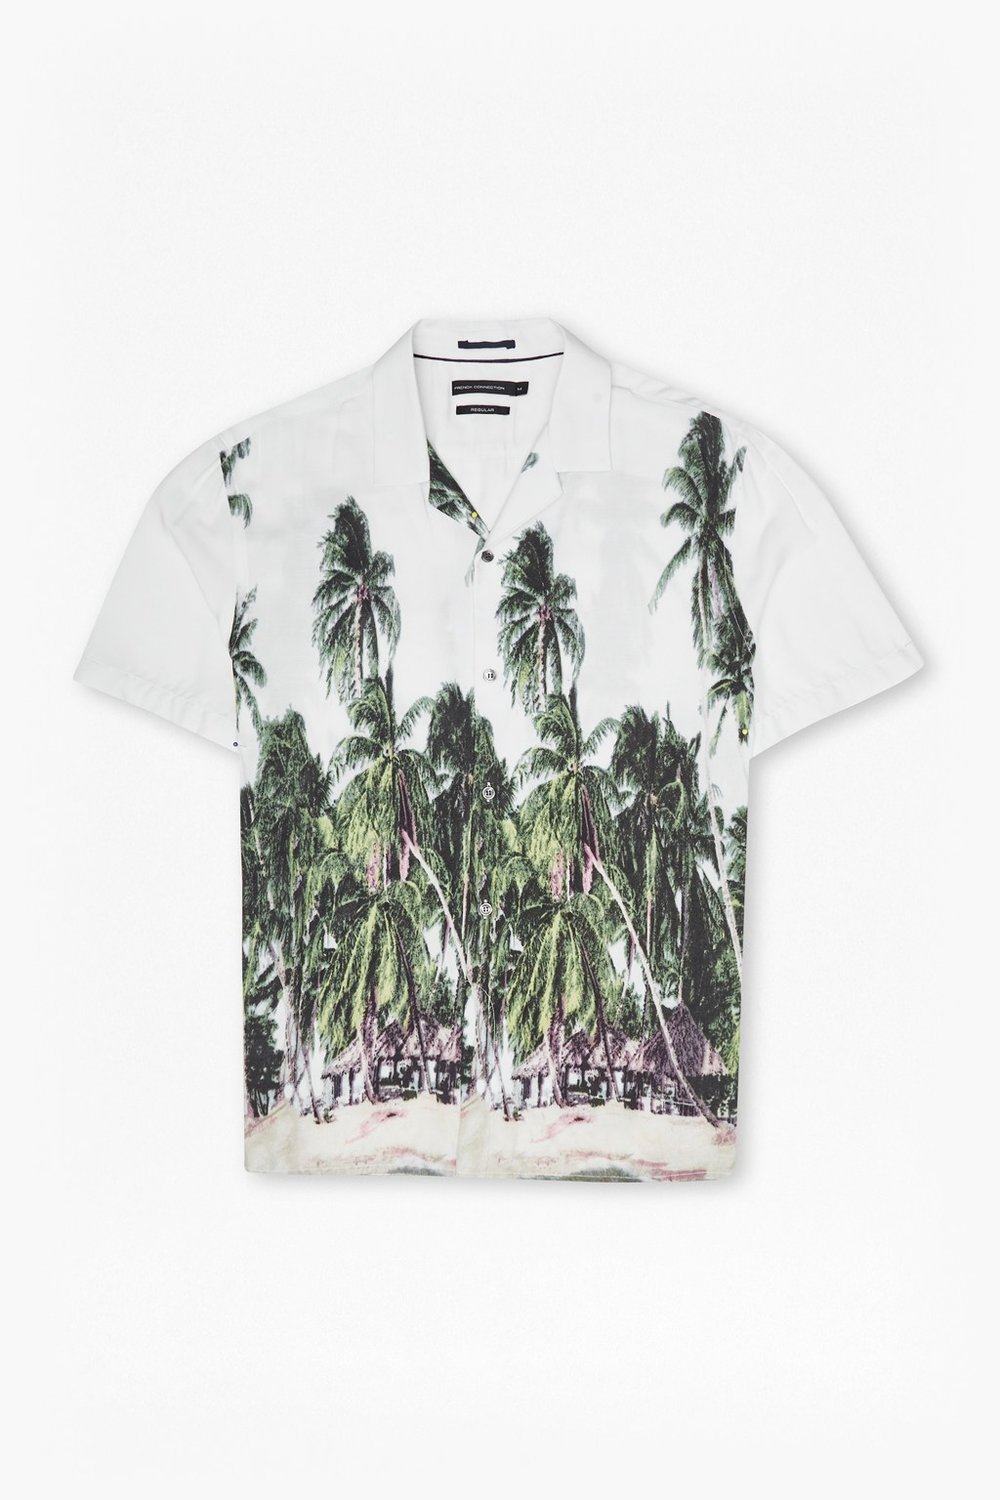 Palm-Tree-Printed-Short-Sleeve-Shirt.jpg